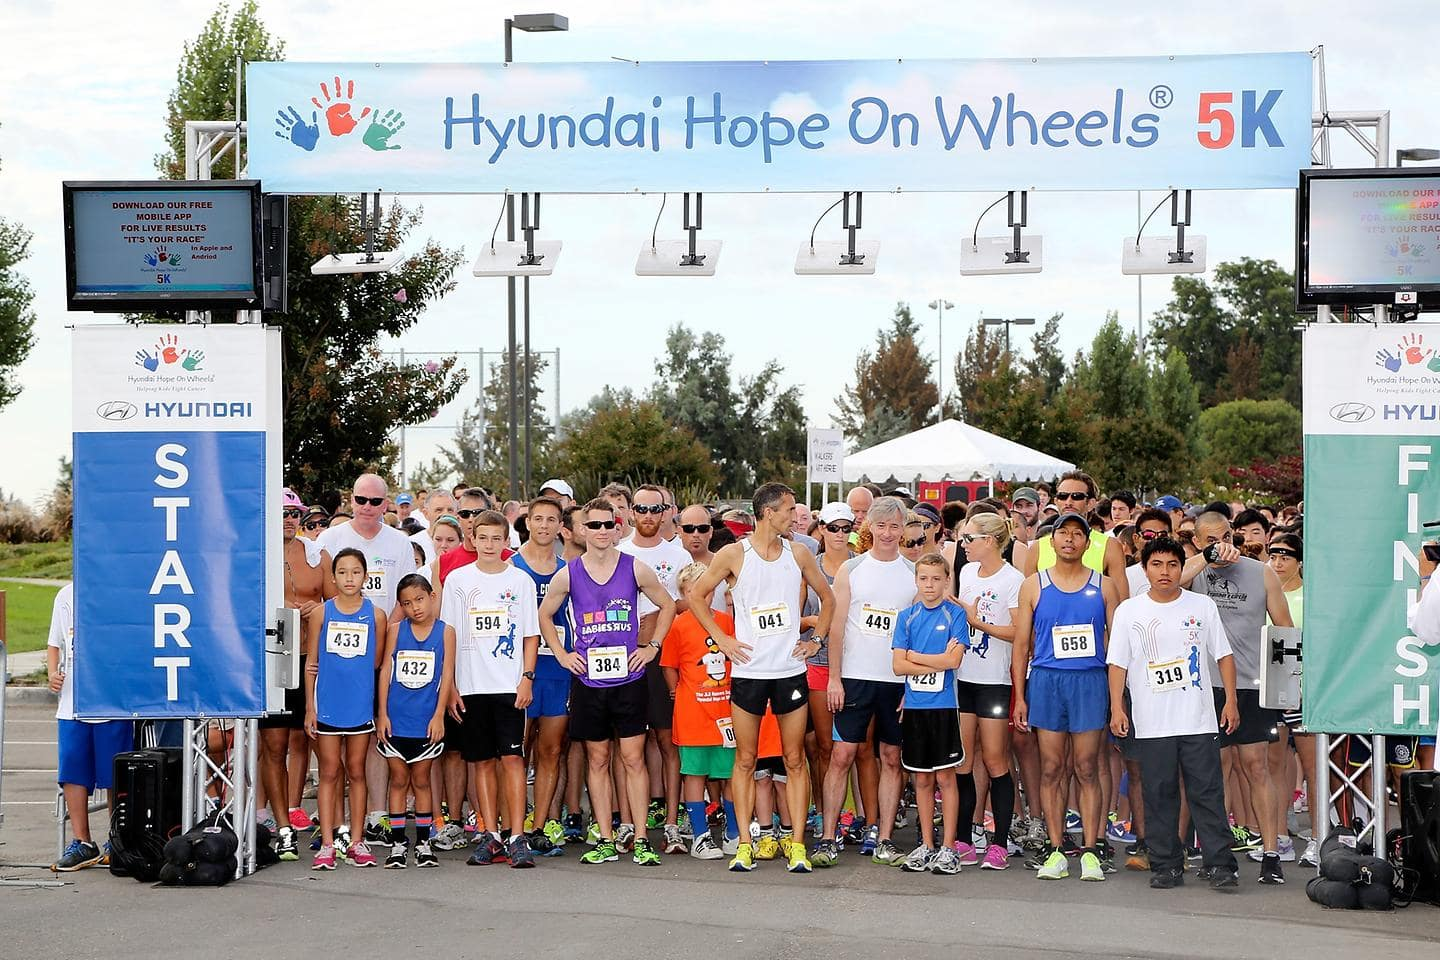 HYUNDAI HOPE ON WHEELS COMPLETES SUCCESSFUL FIFTH ANNUAL NATIONAL SEPTEMBER IS CHILDHOOD CANCER AWARENESS MONTH CAMPAIGN